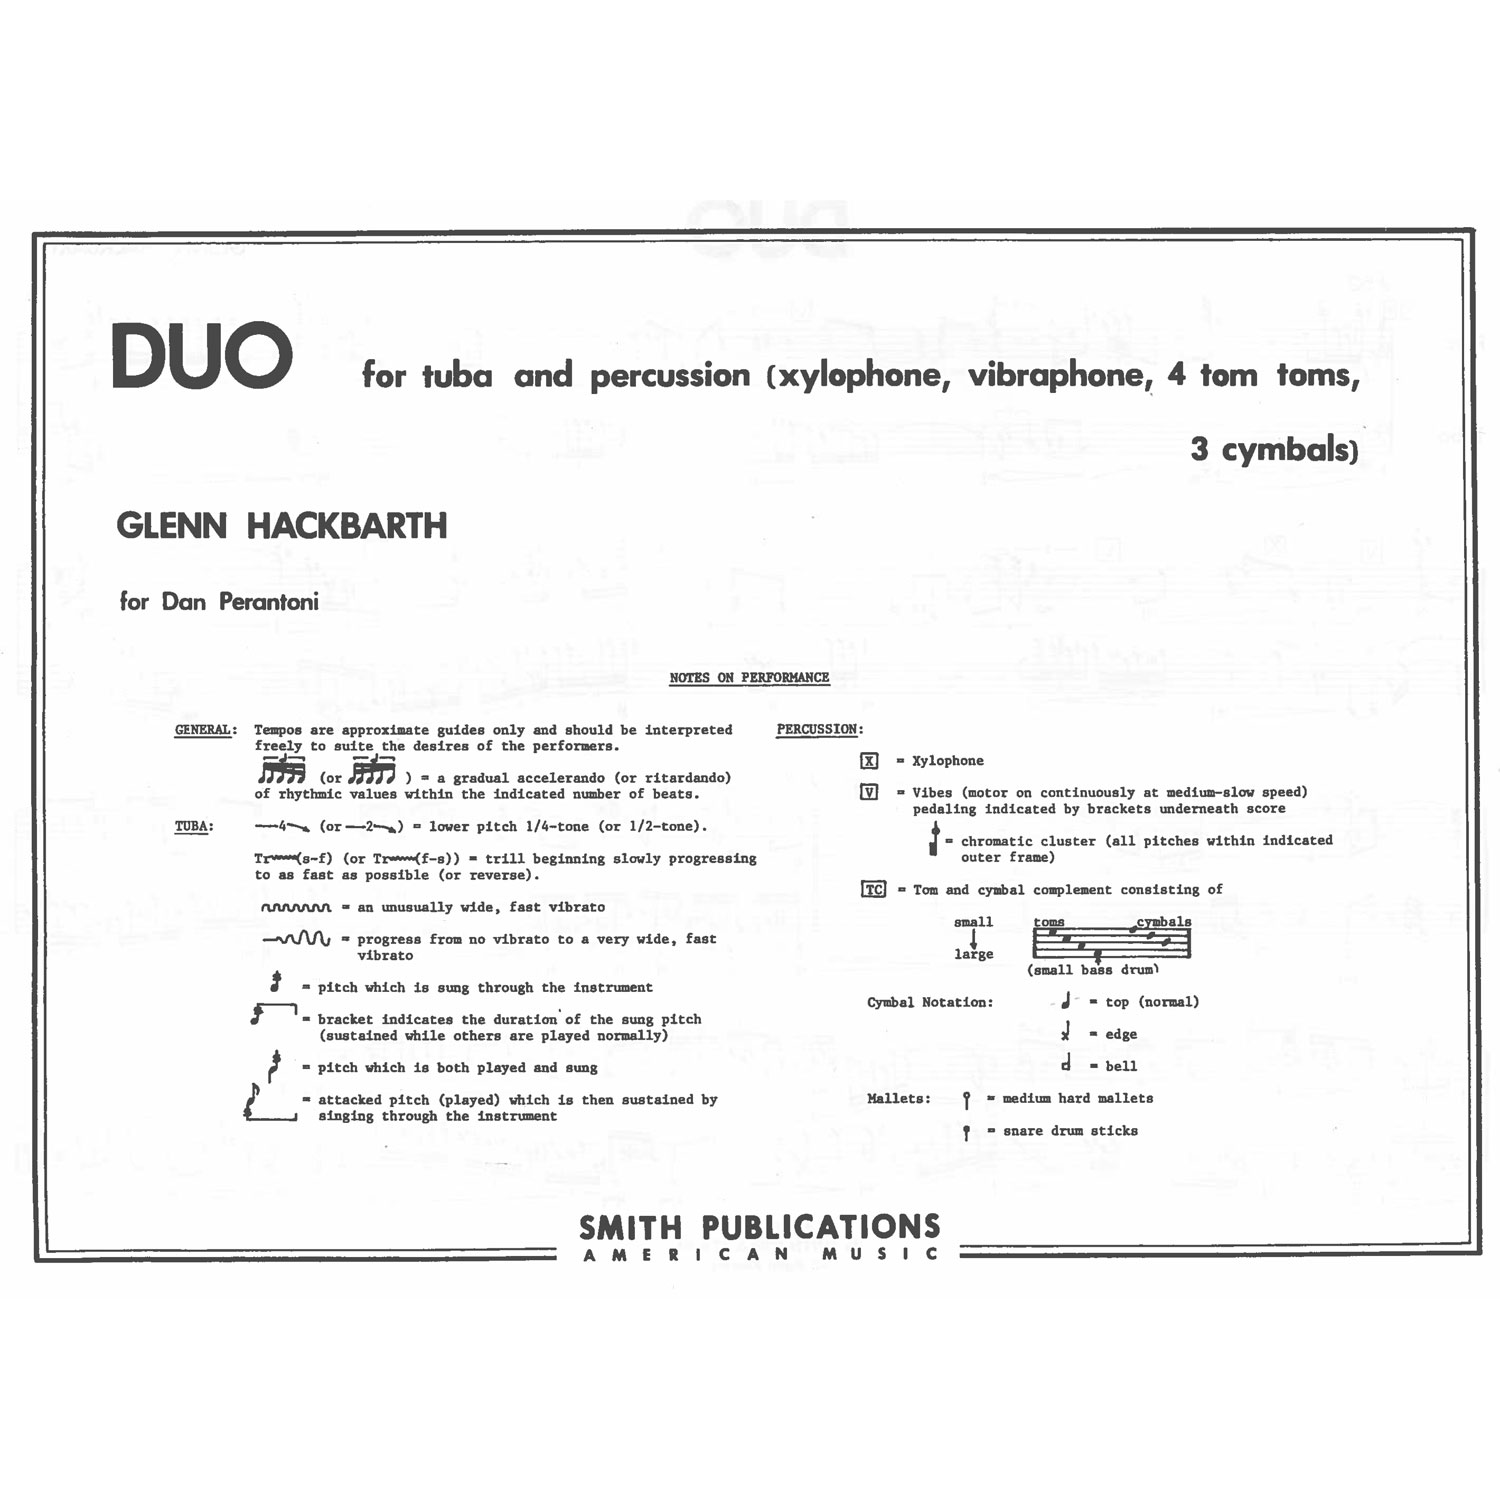 Duo for Tuba and Percussion by Glenn Hackbarth